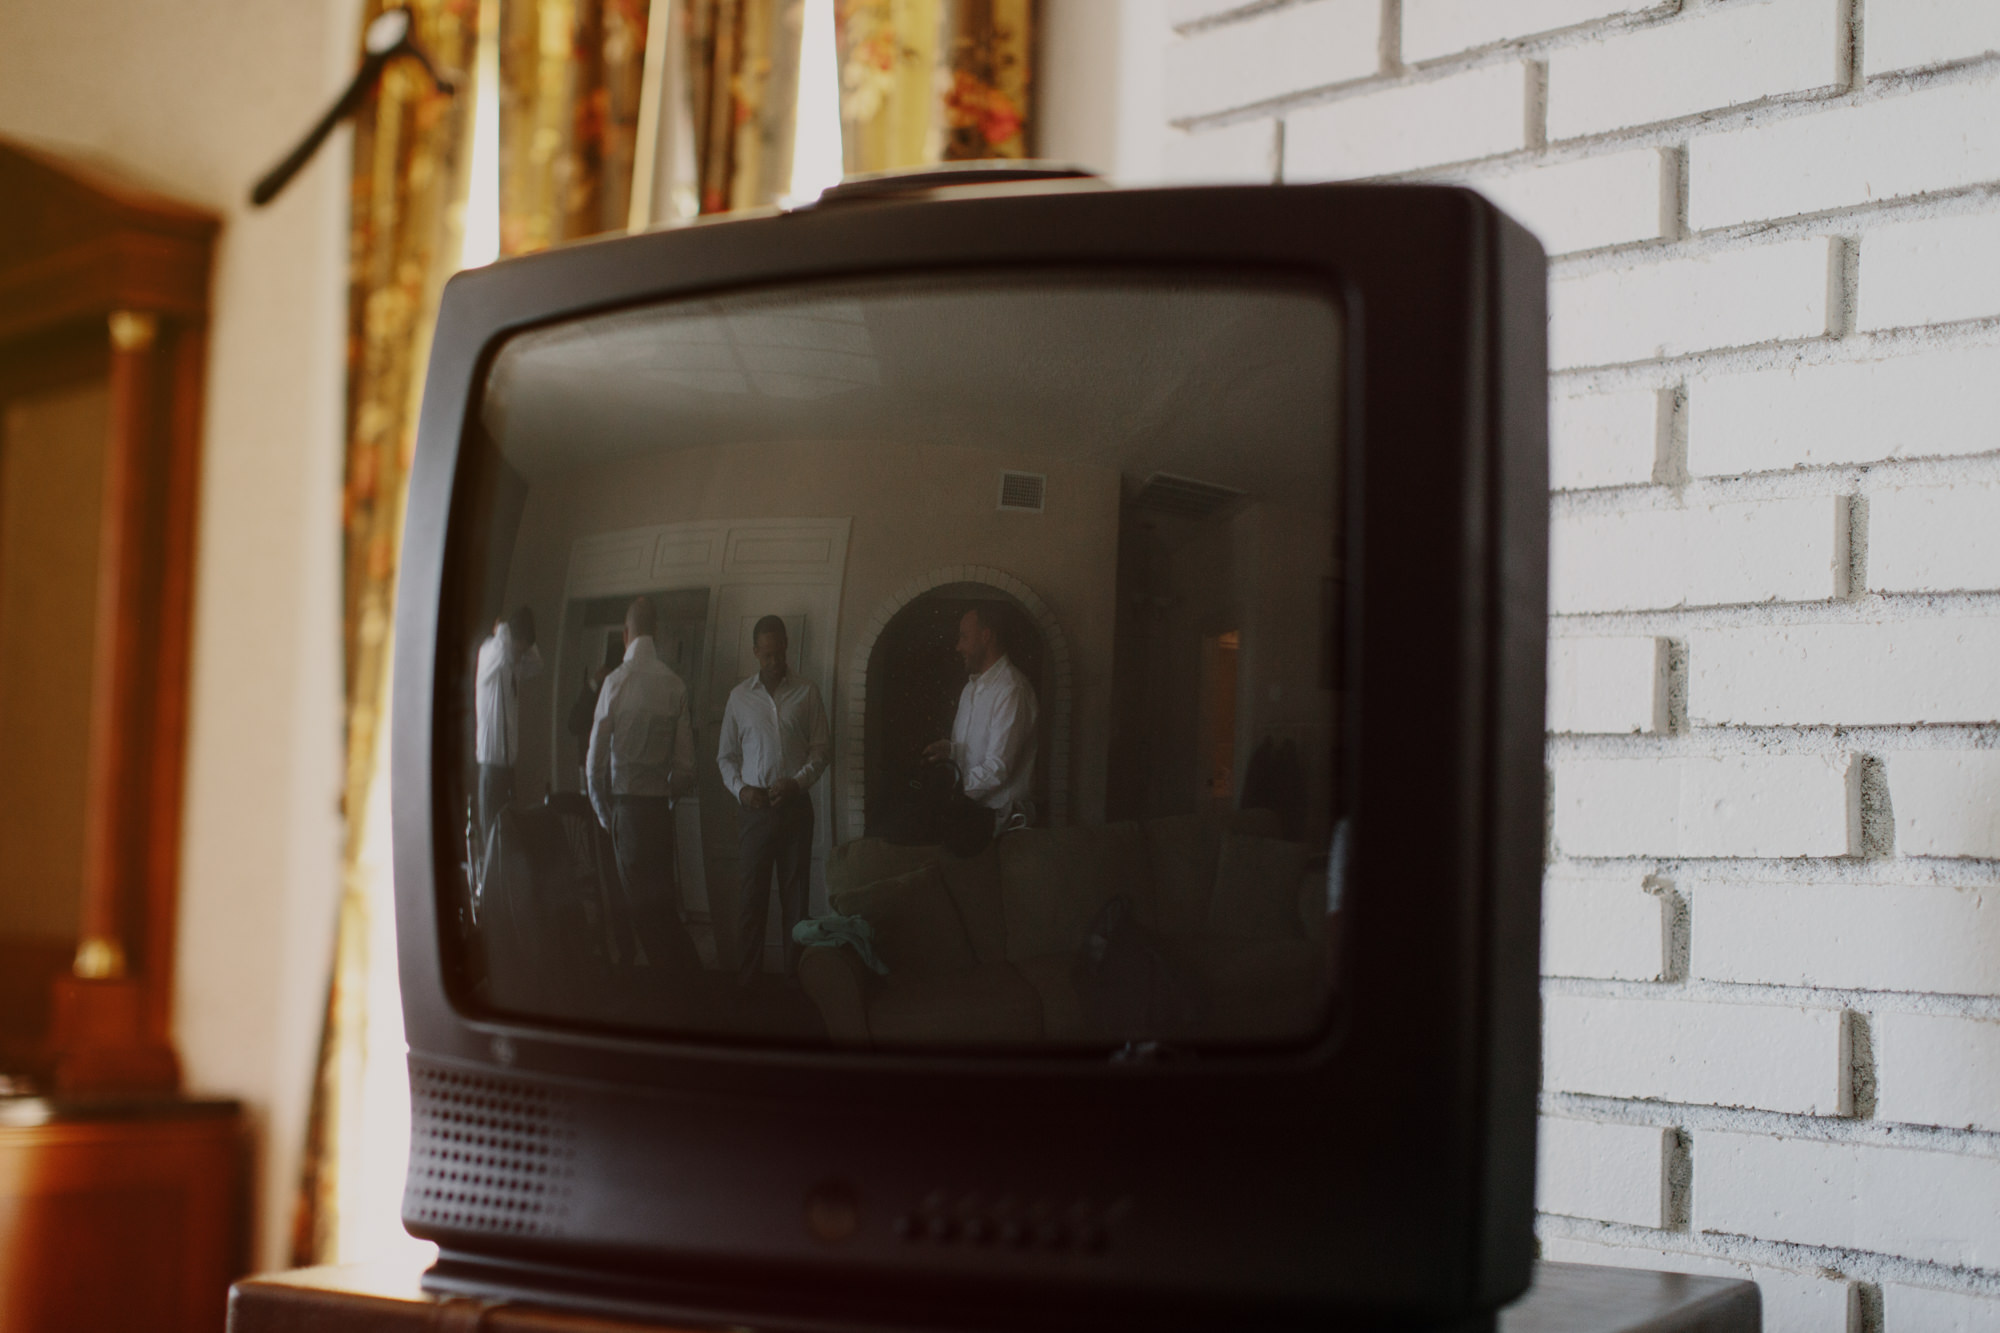 Reflection of guys getting ready in old analog TV by James Moes